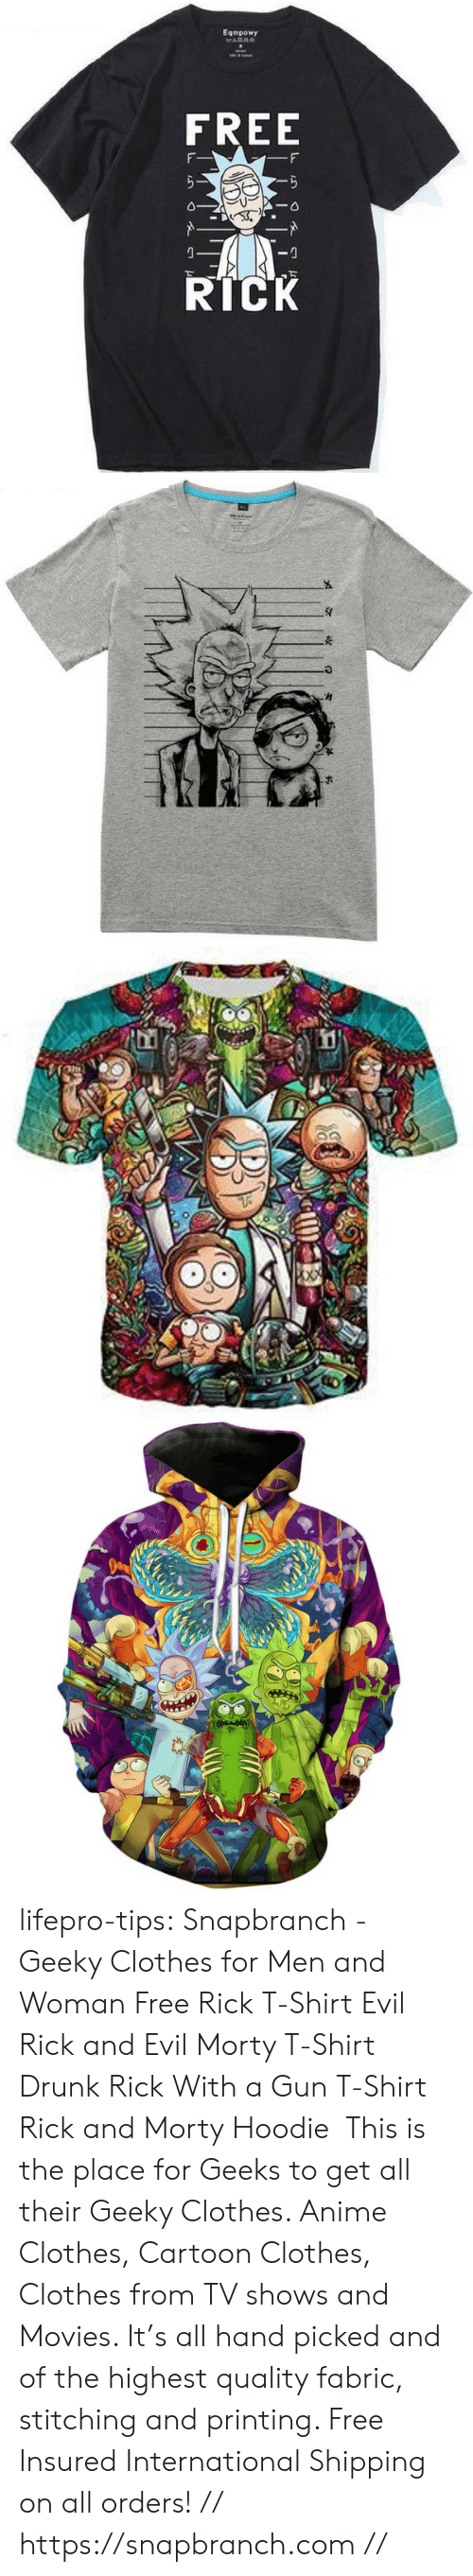 Rick and Morty: Eqmpowy  FREE  RICK lifepro-tips:   Snapbranch  - Geeky Clothes  for Men and Woman  Free Rick T-Shirt  Evil Rick and Evil Morty T-Shirt  Drunk Rick With a Gun  T-Shirt   Rick and Morty Hoodie   This is the place for Geeks to get all their Geeky Clothes. Anime Clothes, Cartoon Clothes, Clothes from TV shows and Movies.  It's all hand picked and of the highest quality fabric, stitching and  printing. Free Insured International Shipping on all orders! // https://snapbranch.com //